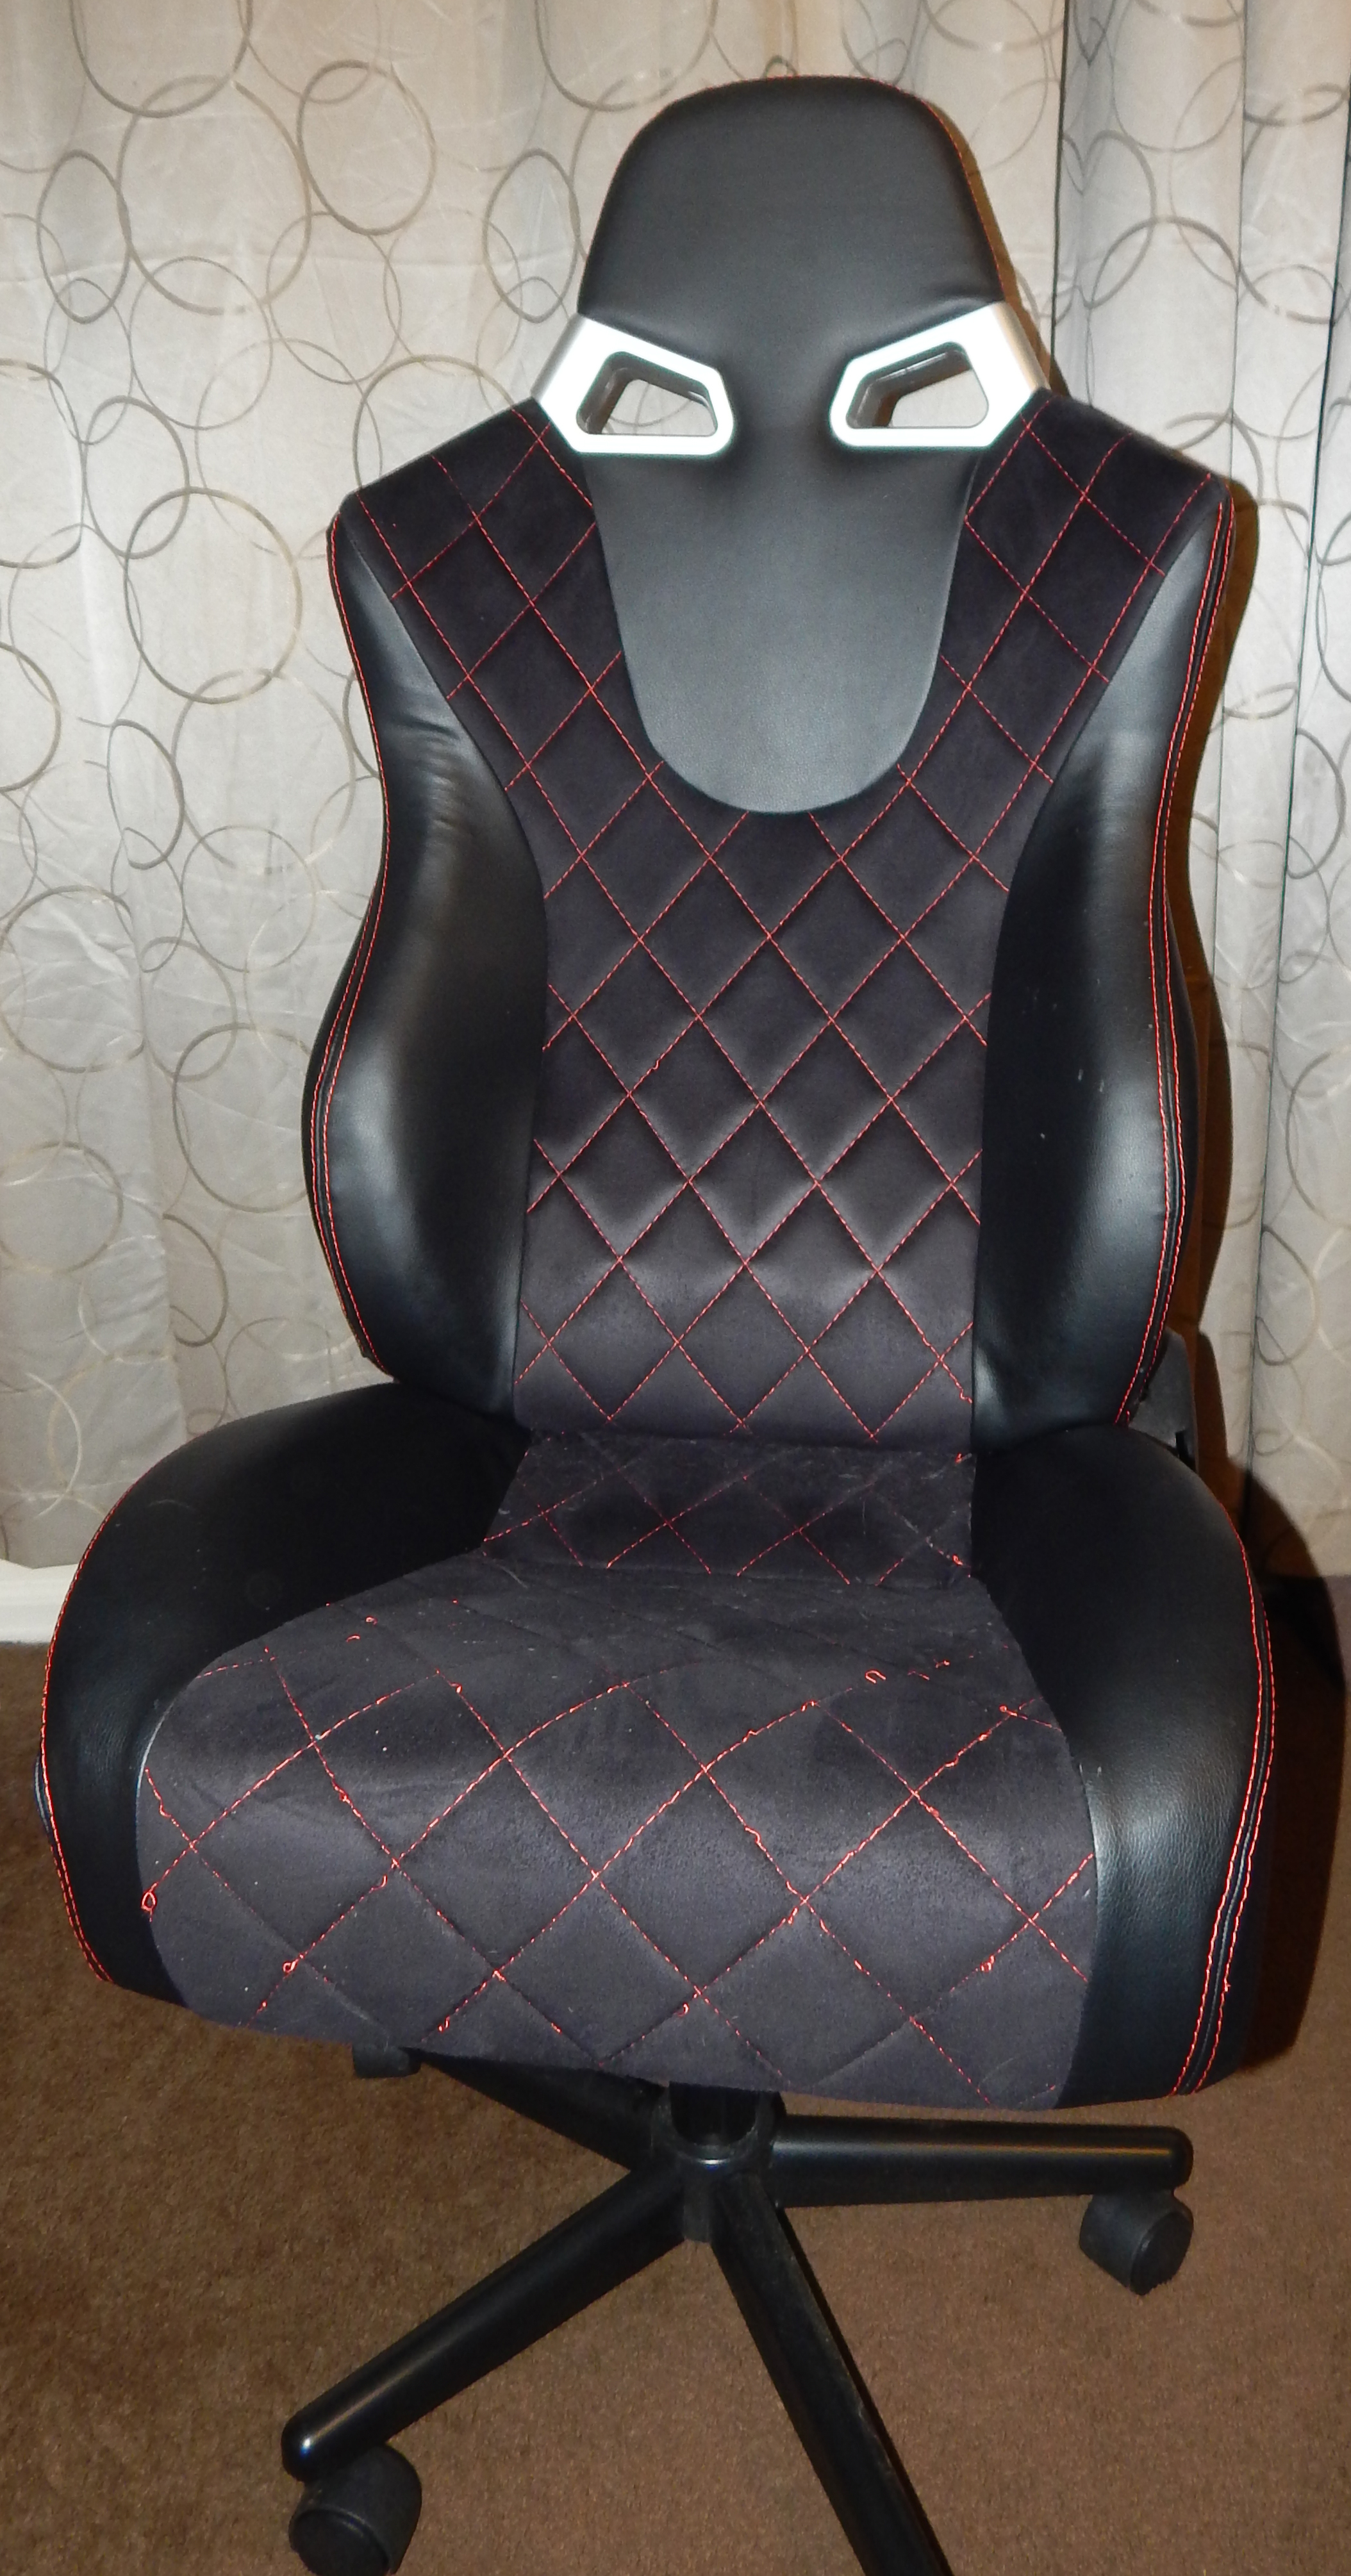 Super Comfy Chair My 130 Dx Racer Gaming Chair Sir Real